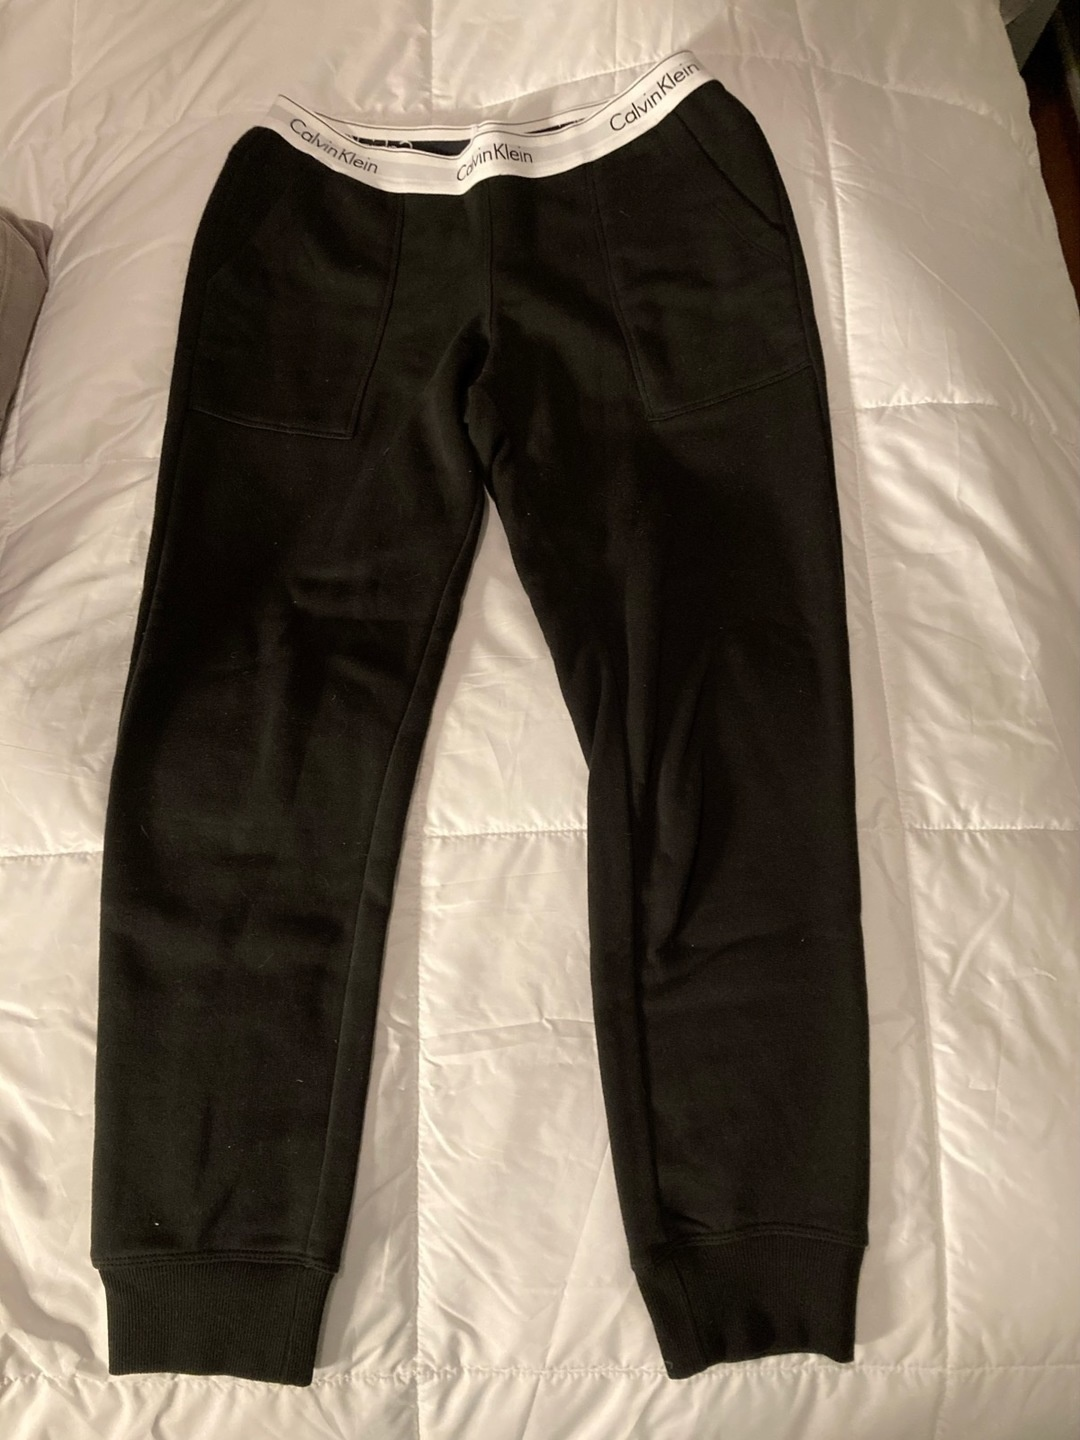 Women's trousers & jeans - CALVIN KLEIN photo 1